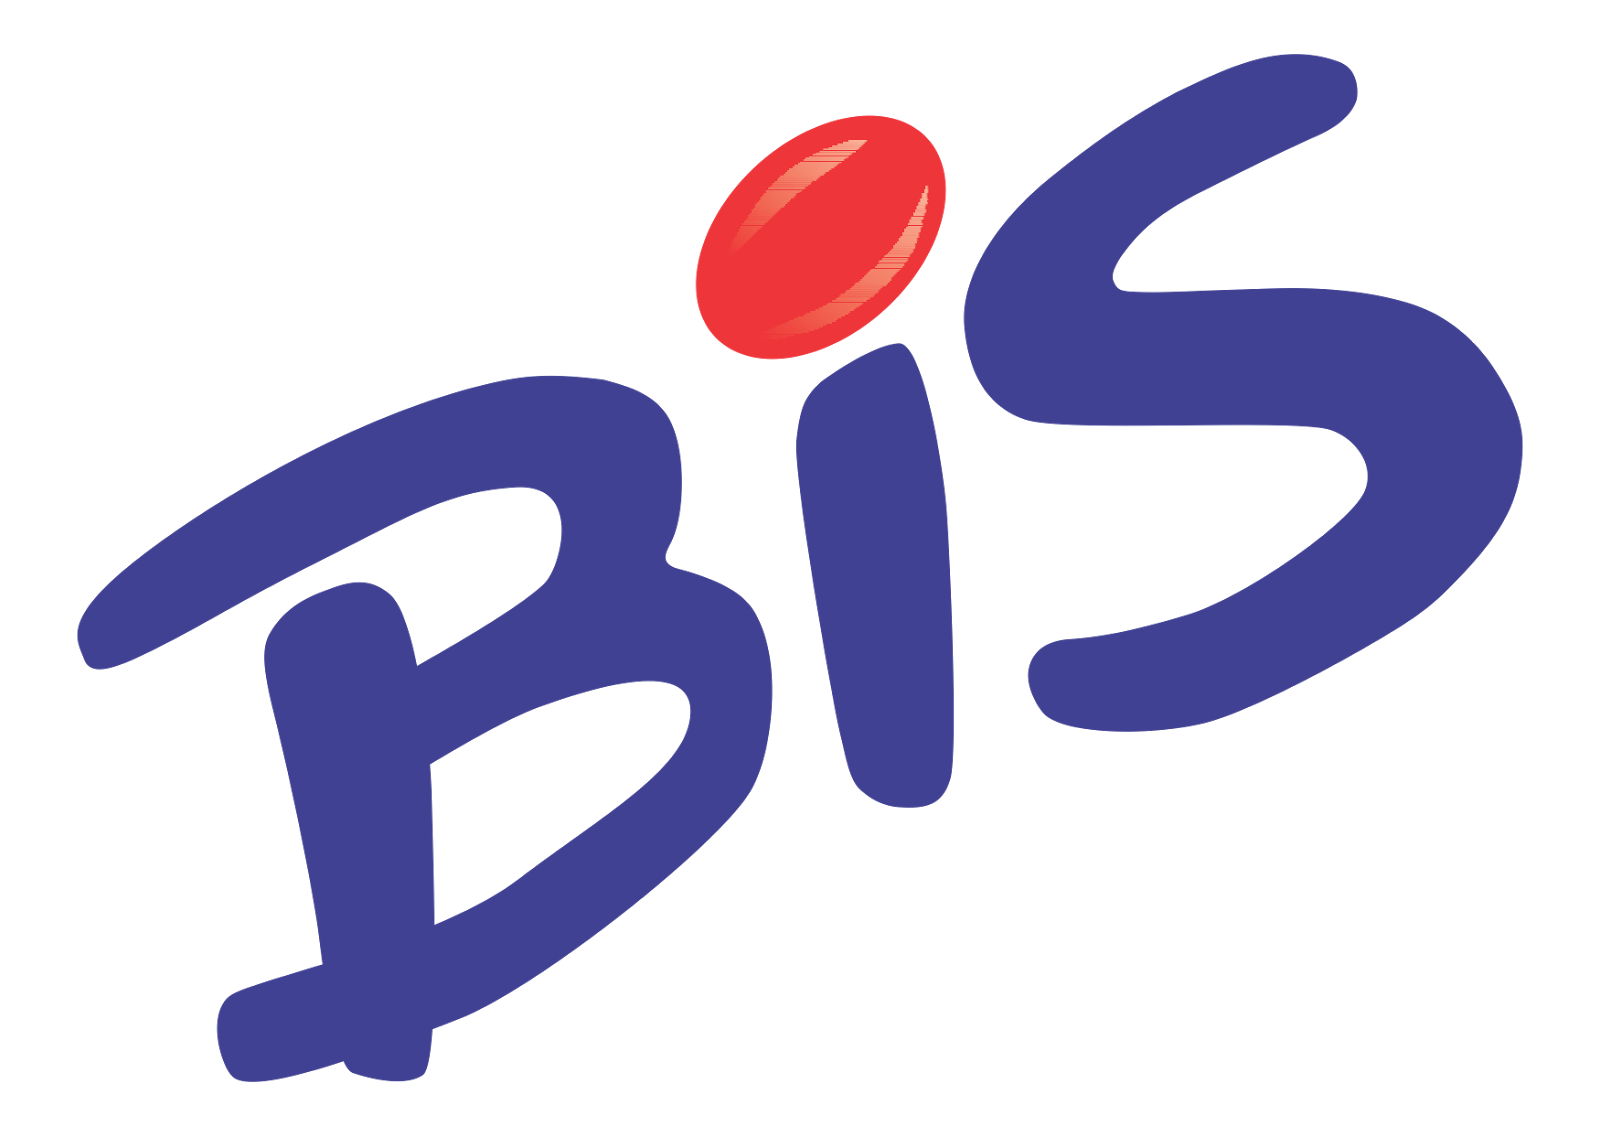 Bis Logo Wallpaper